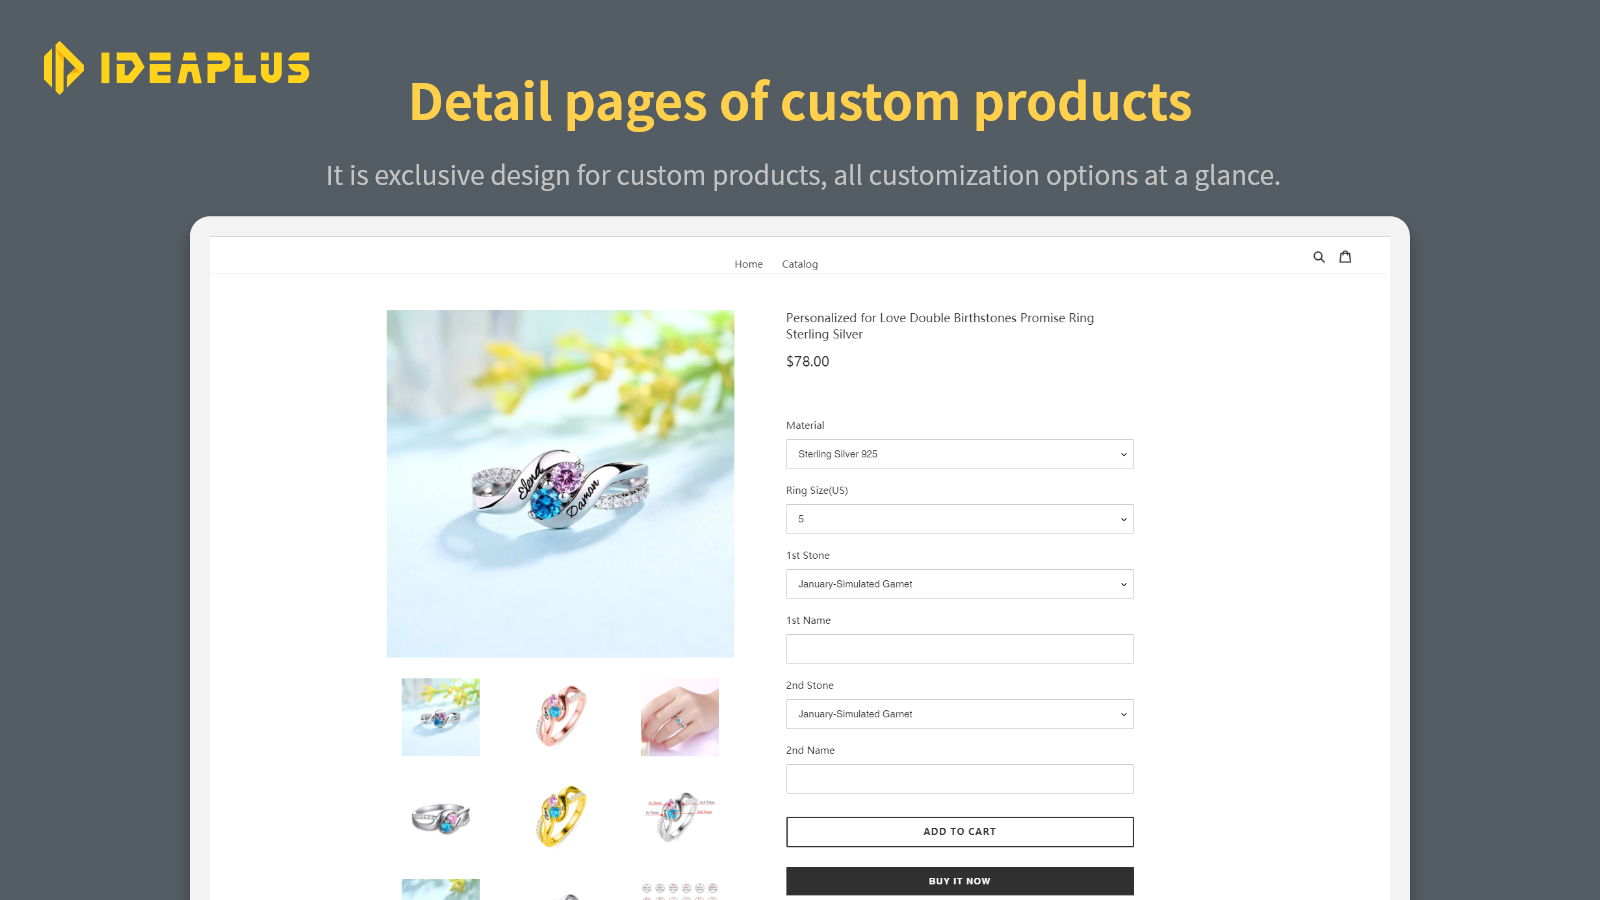 Detail pages of custom products